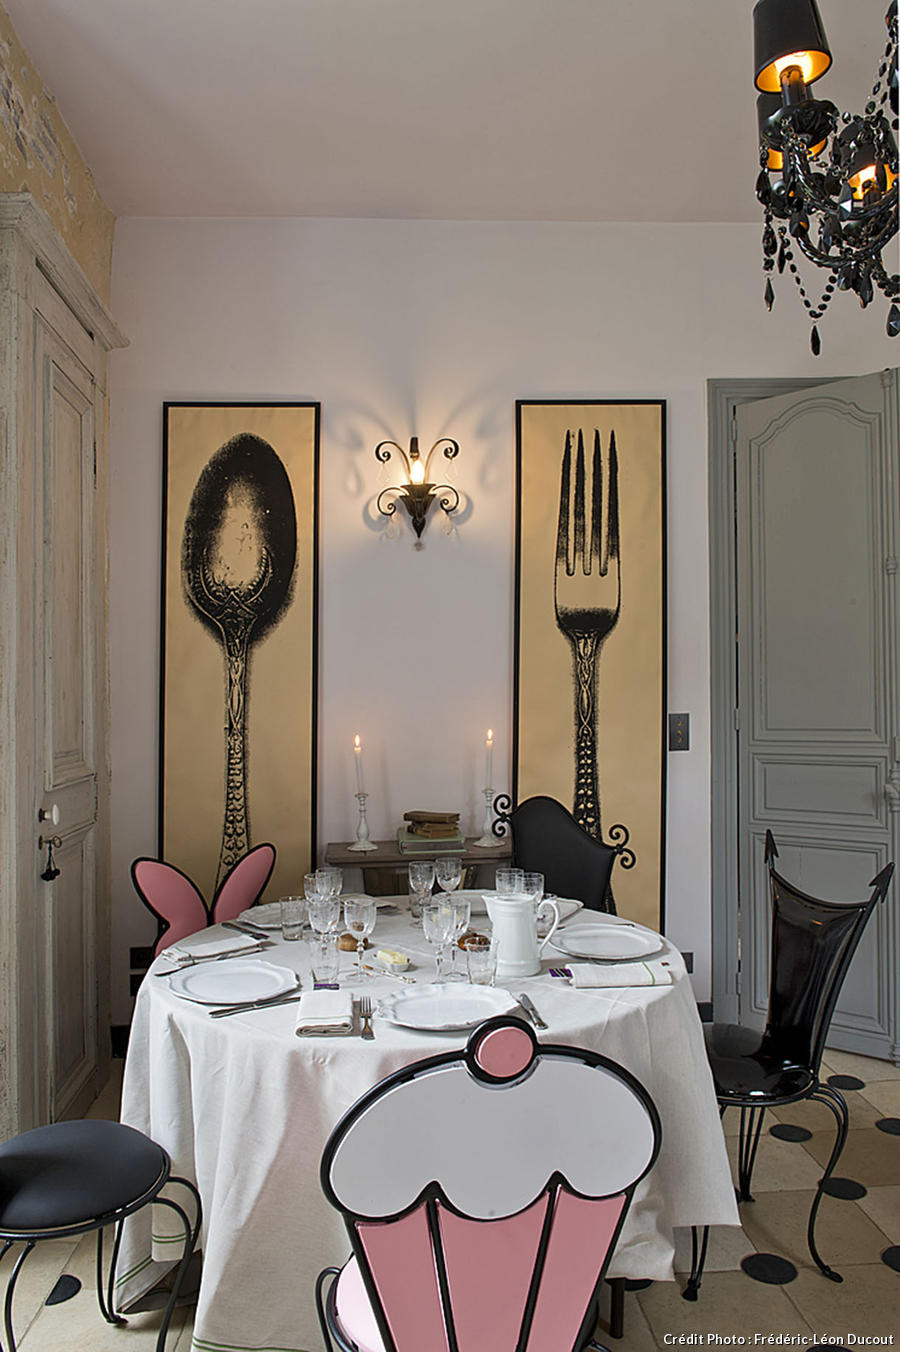 Coin repas de la maison de Chantal Thomass